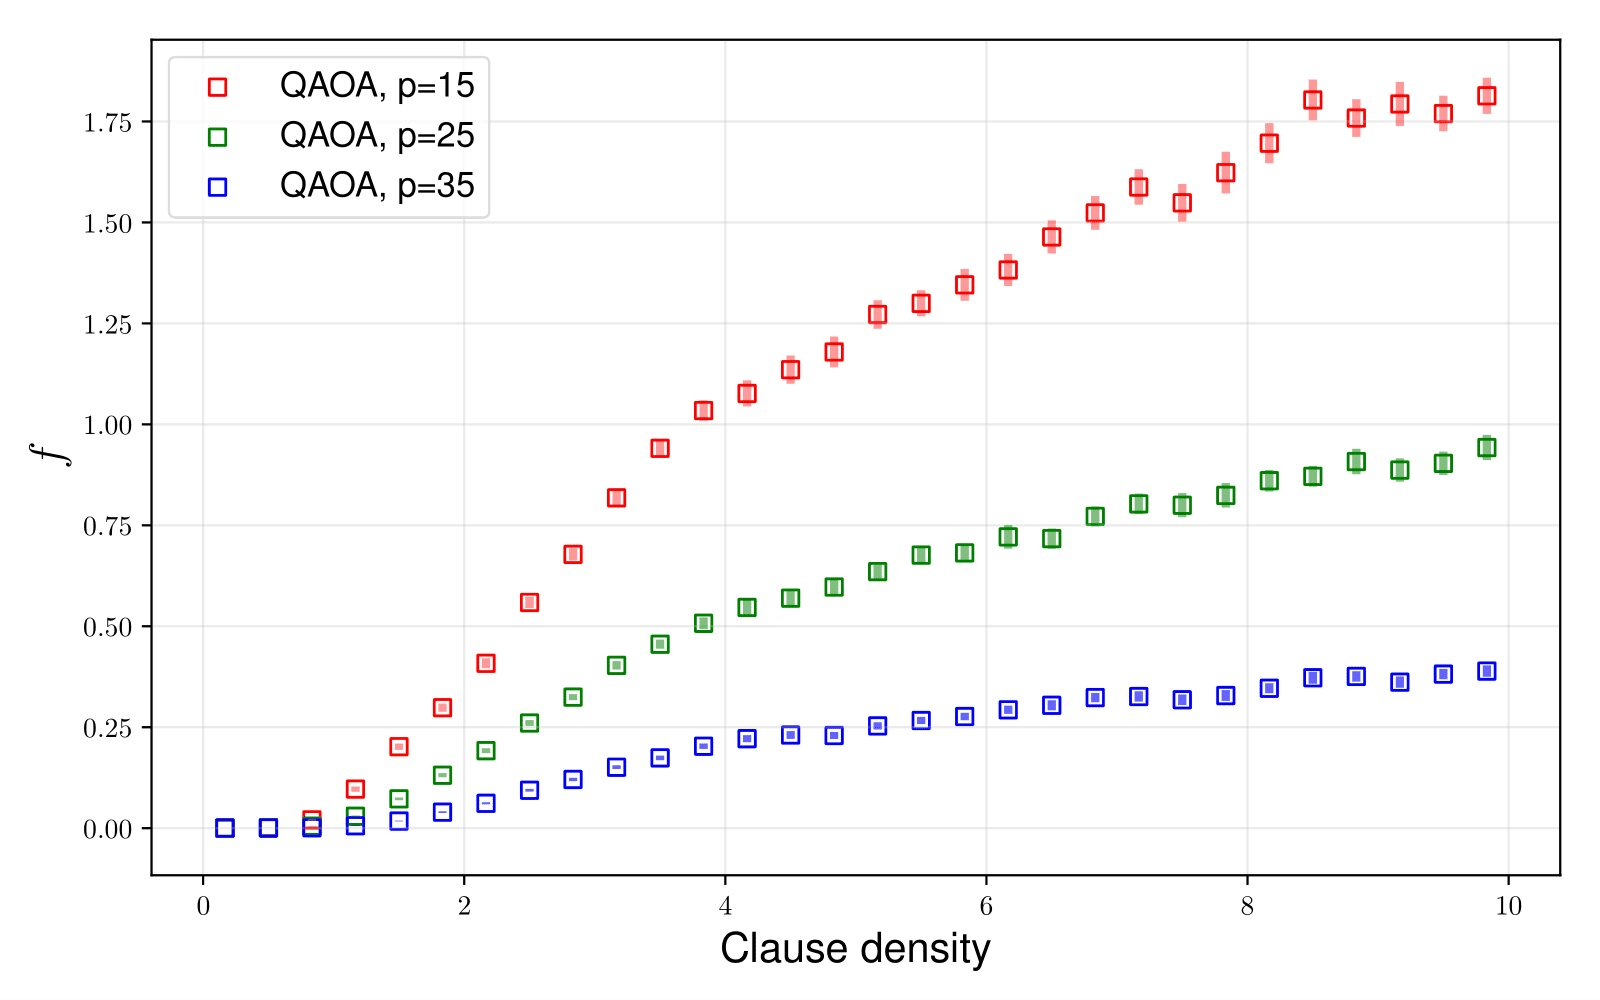 The graph represents the performance (difference between QAOA optima and exact optima) of fixed depth QAOA circuits on randomly generated MAX-SAT instances with increasing problem densities. Although higher depth versions achieve better performances, they still exhibit reachability deficits. Credit: Physical Review Letters